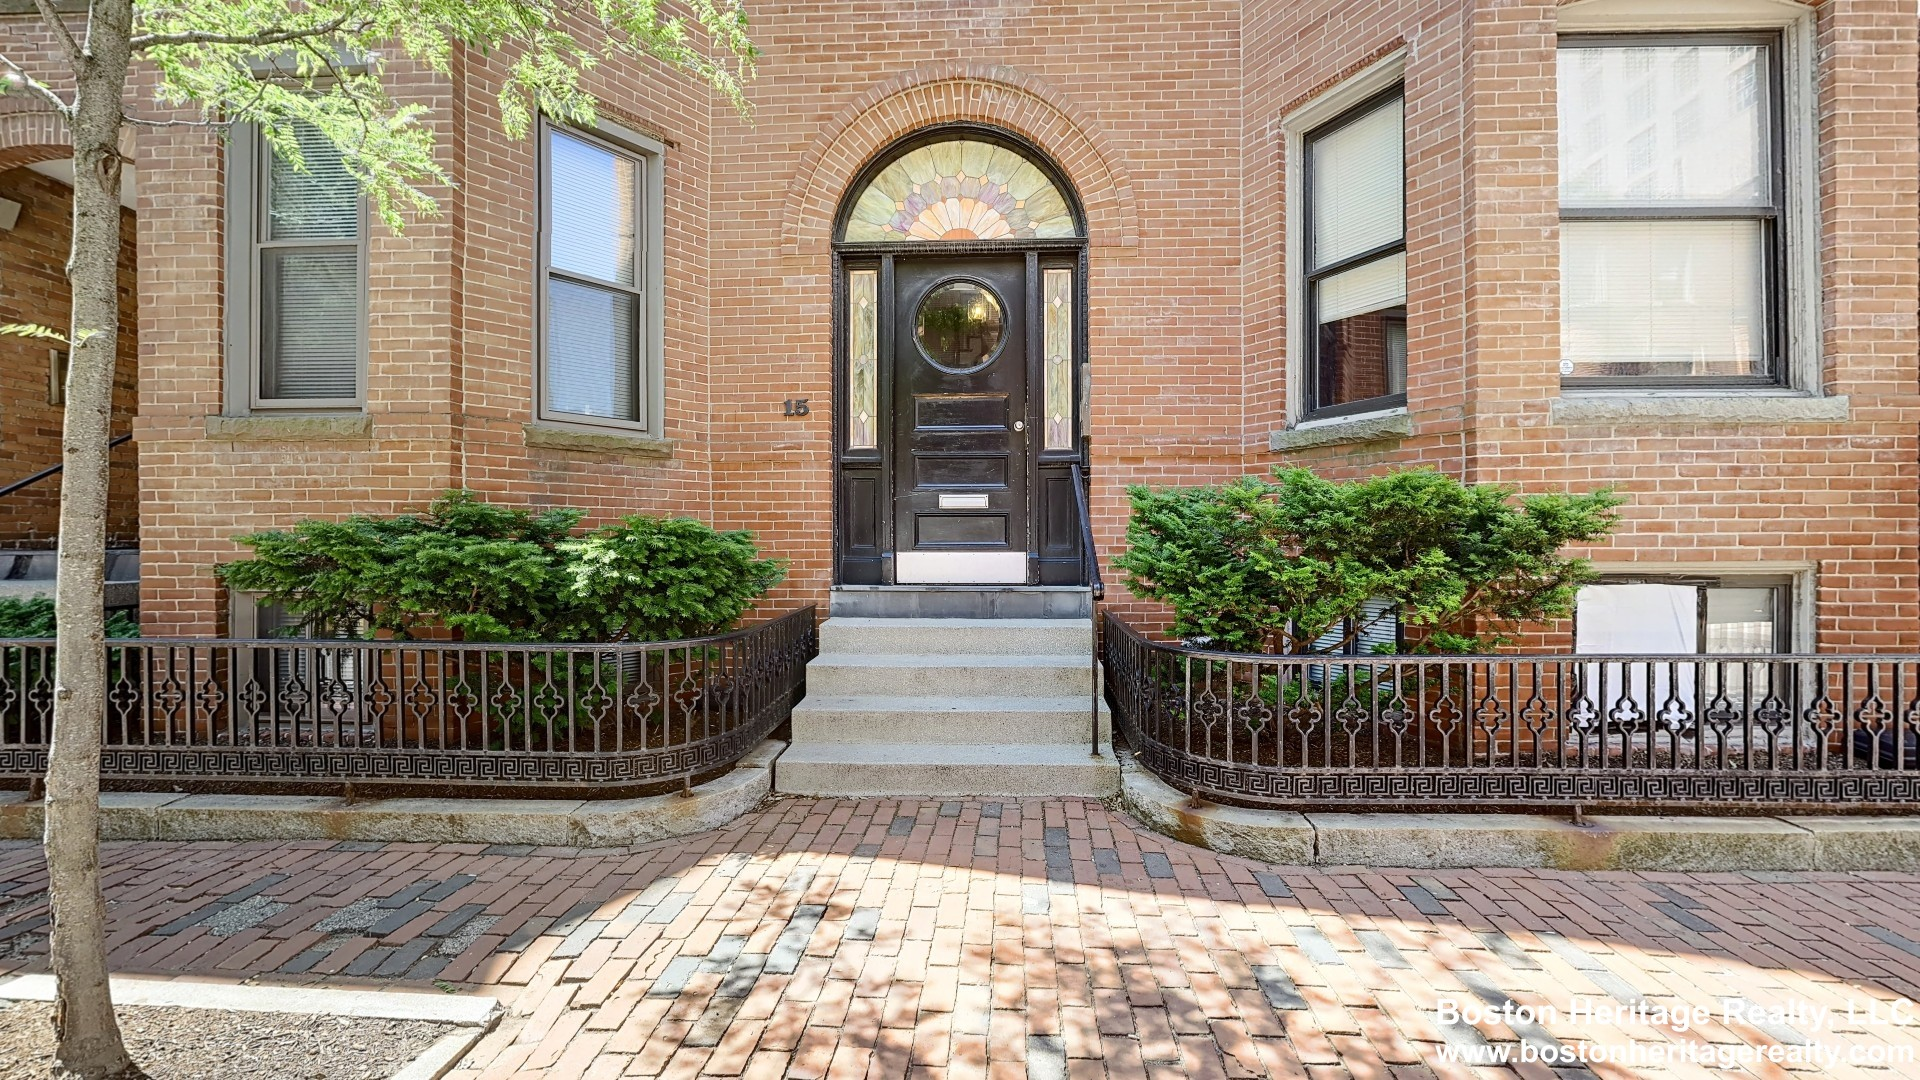 2 Beds, 1 Bath apartment in Boston, Back Bay for $2,850